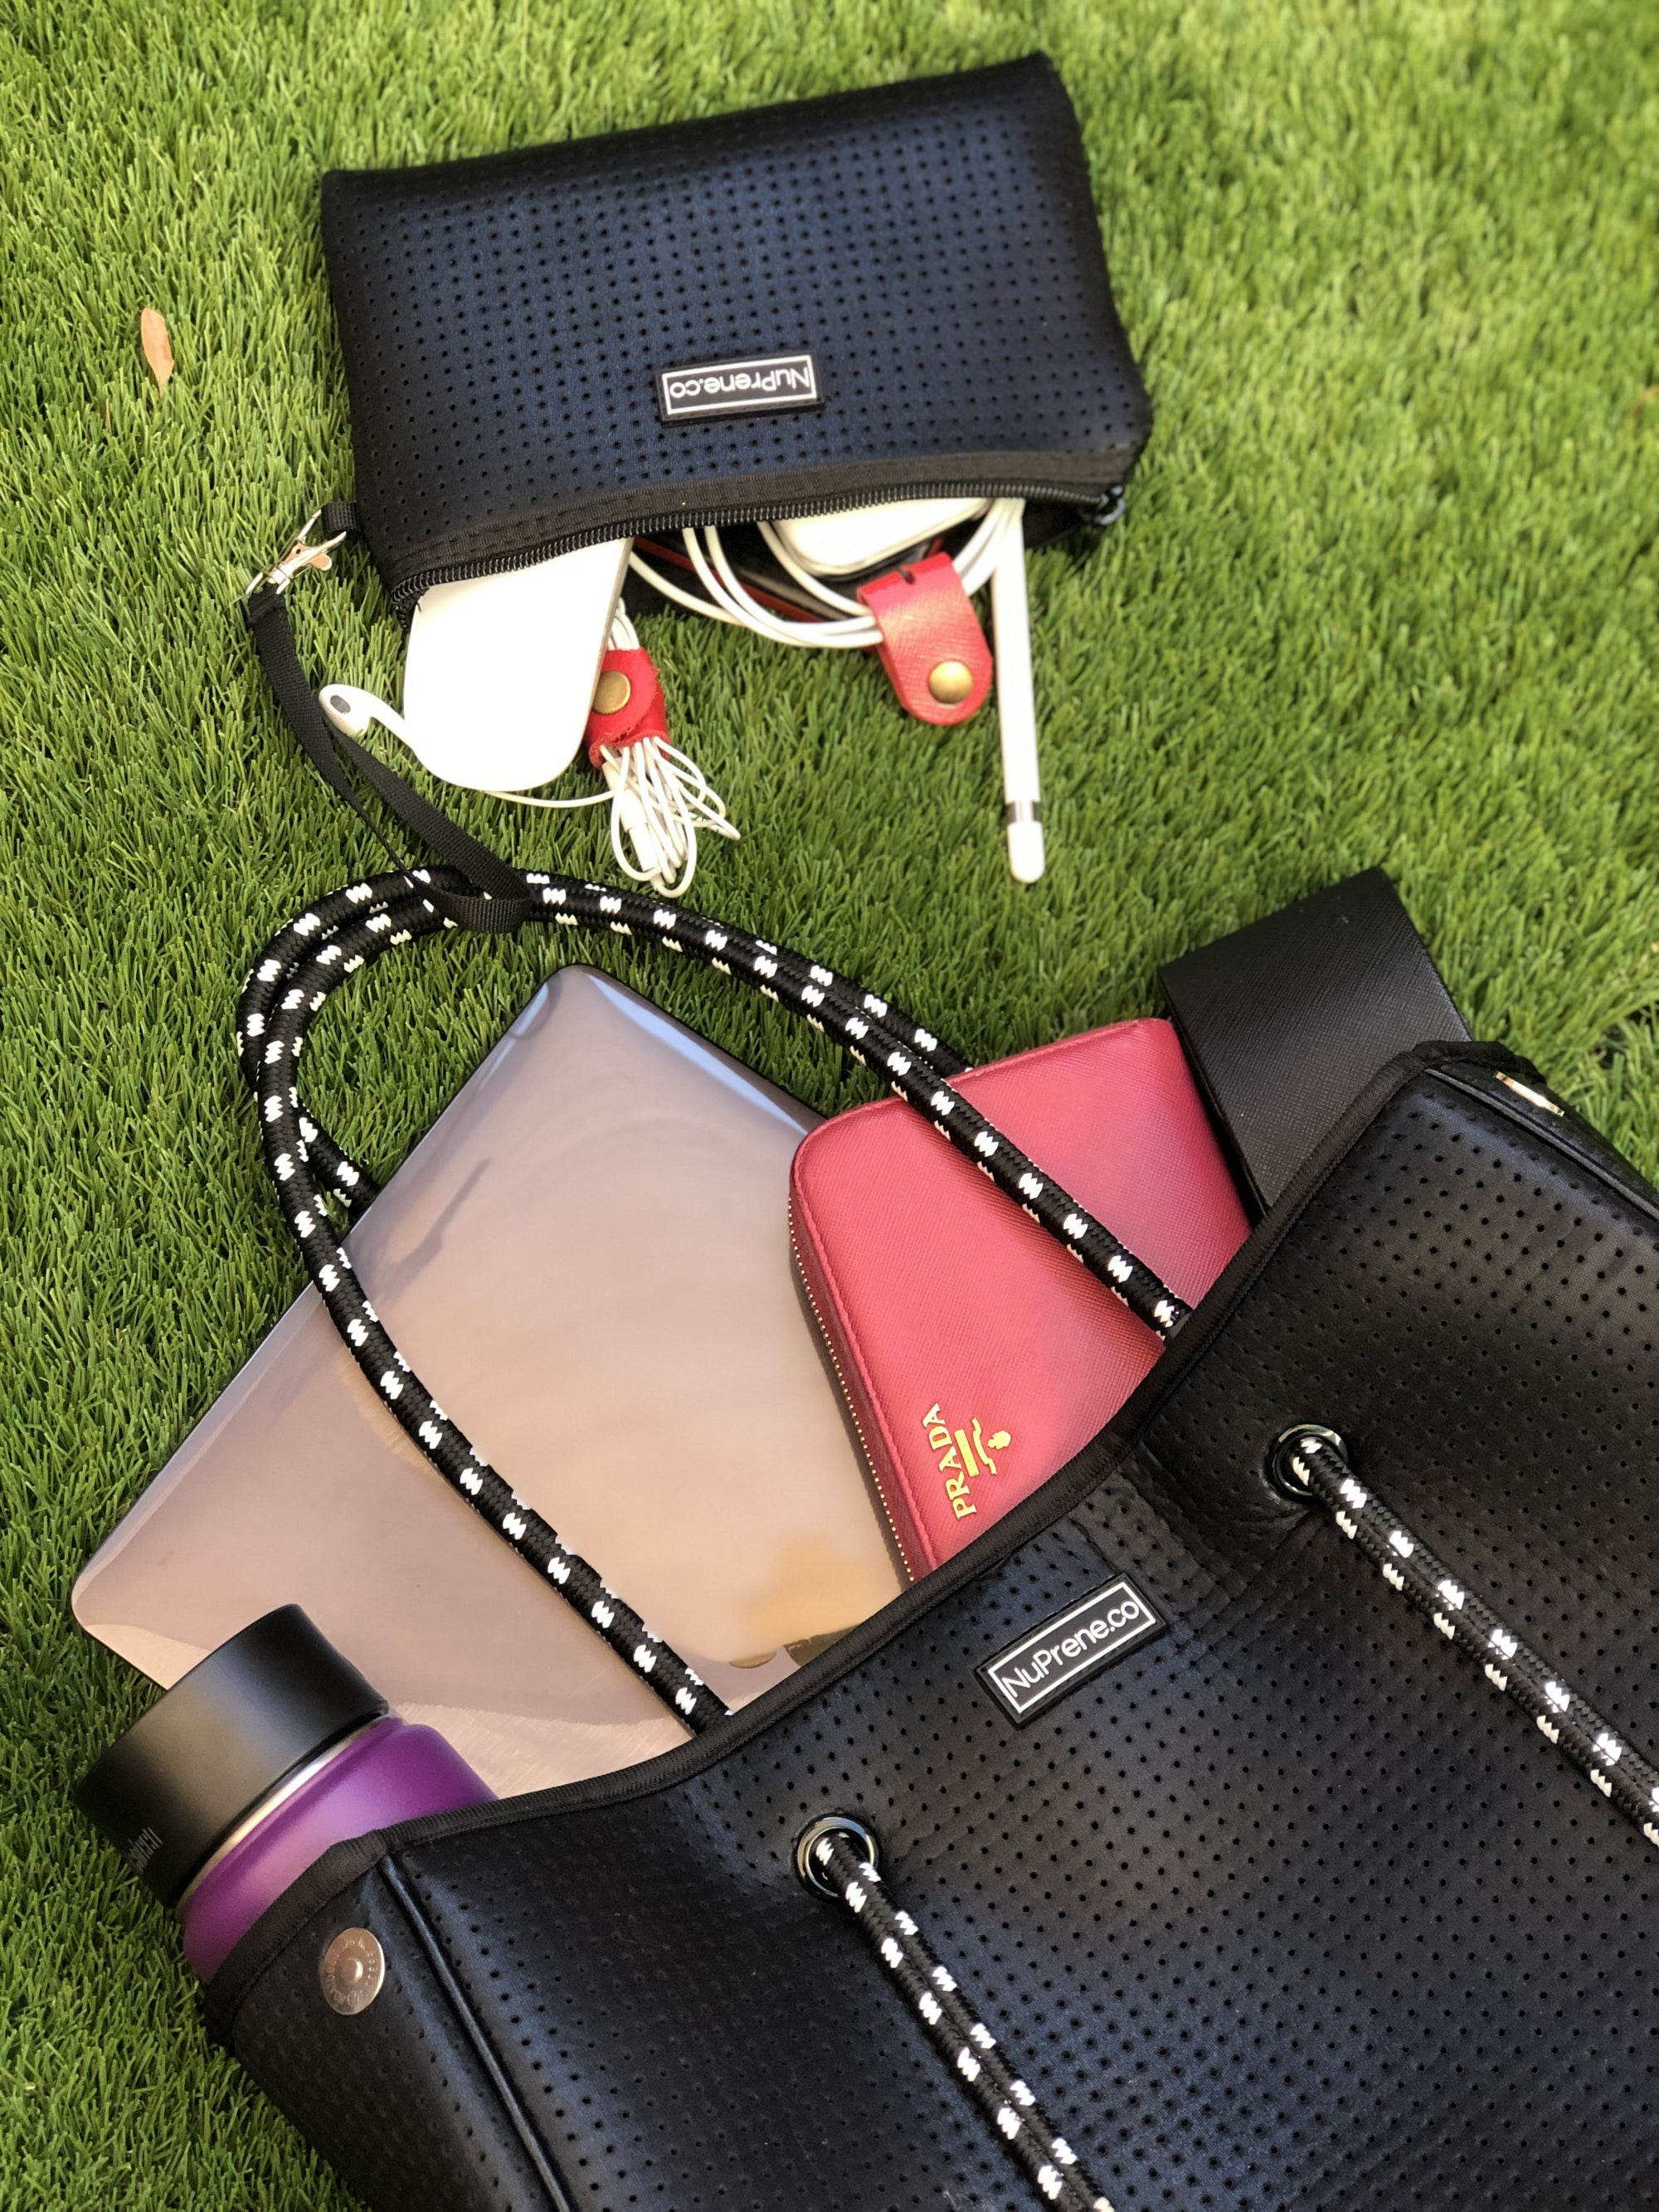 Essential Reasons to Own a Neoprene Bag